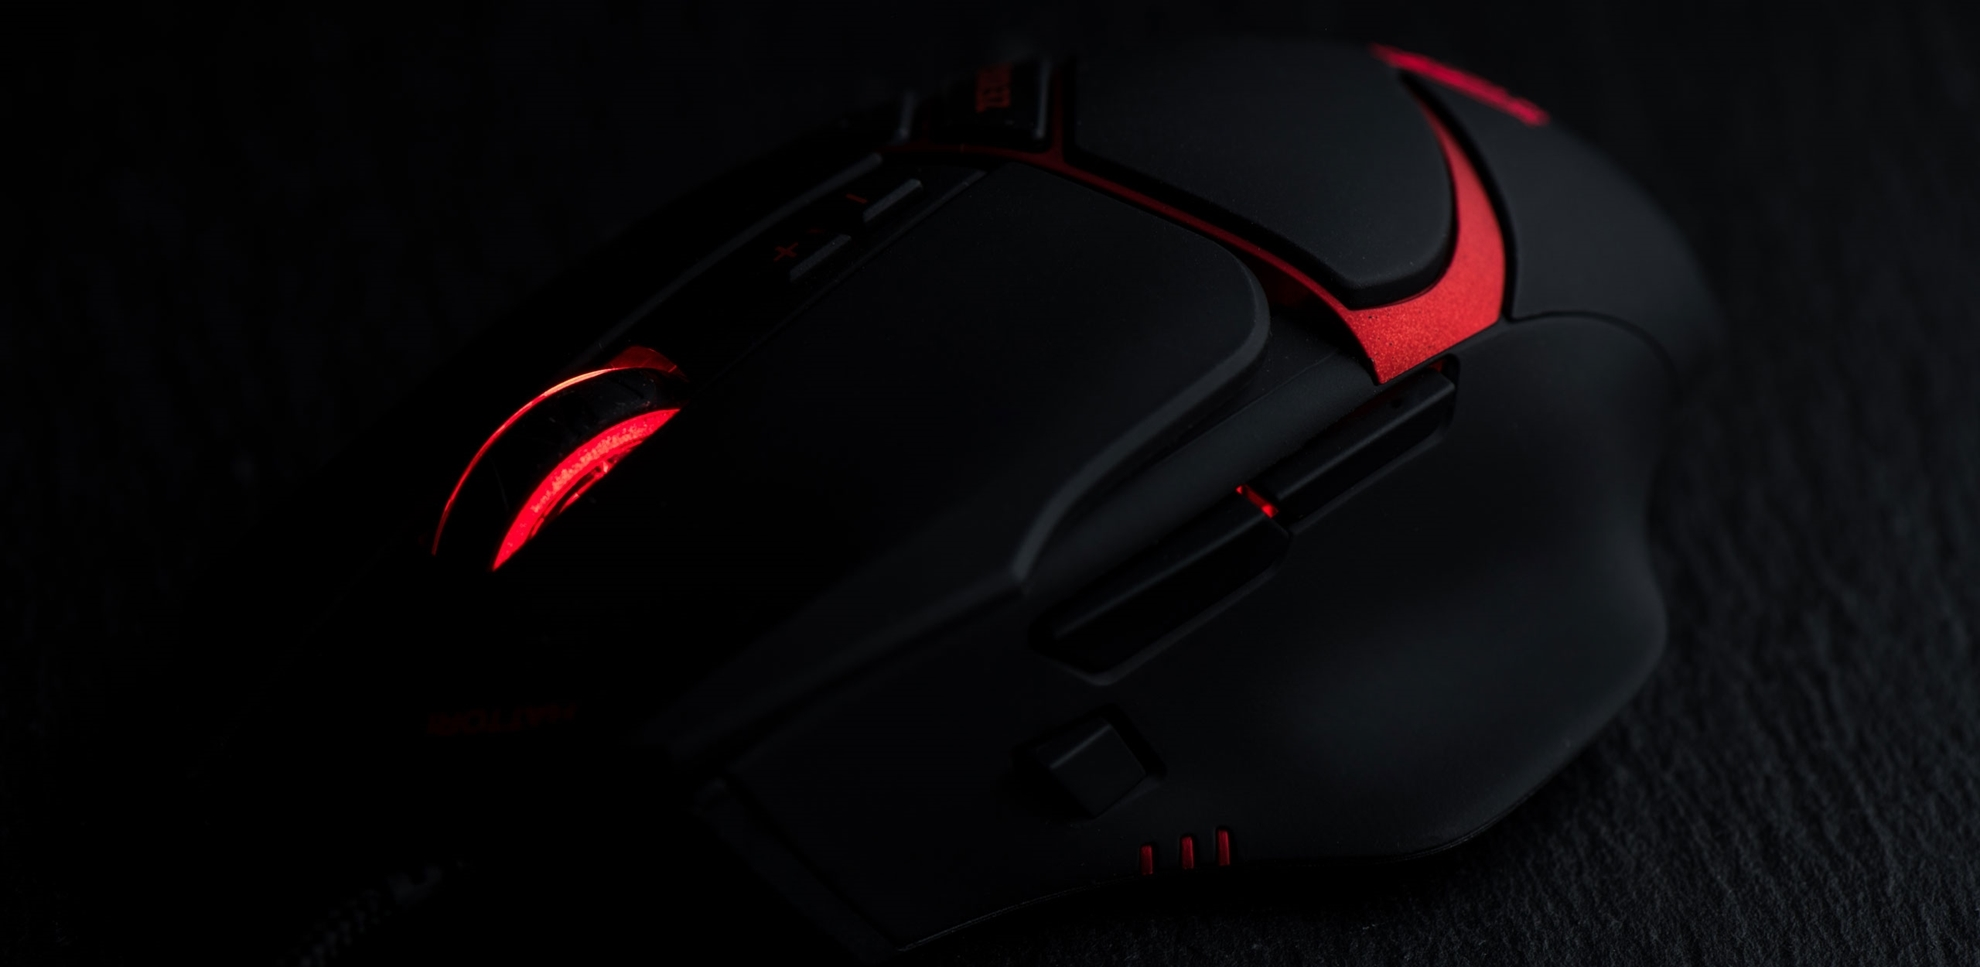 ZeroGround Hattori - Gaming mouse